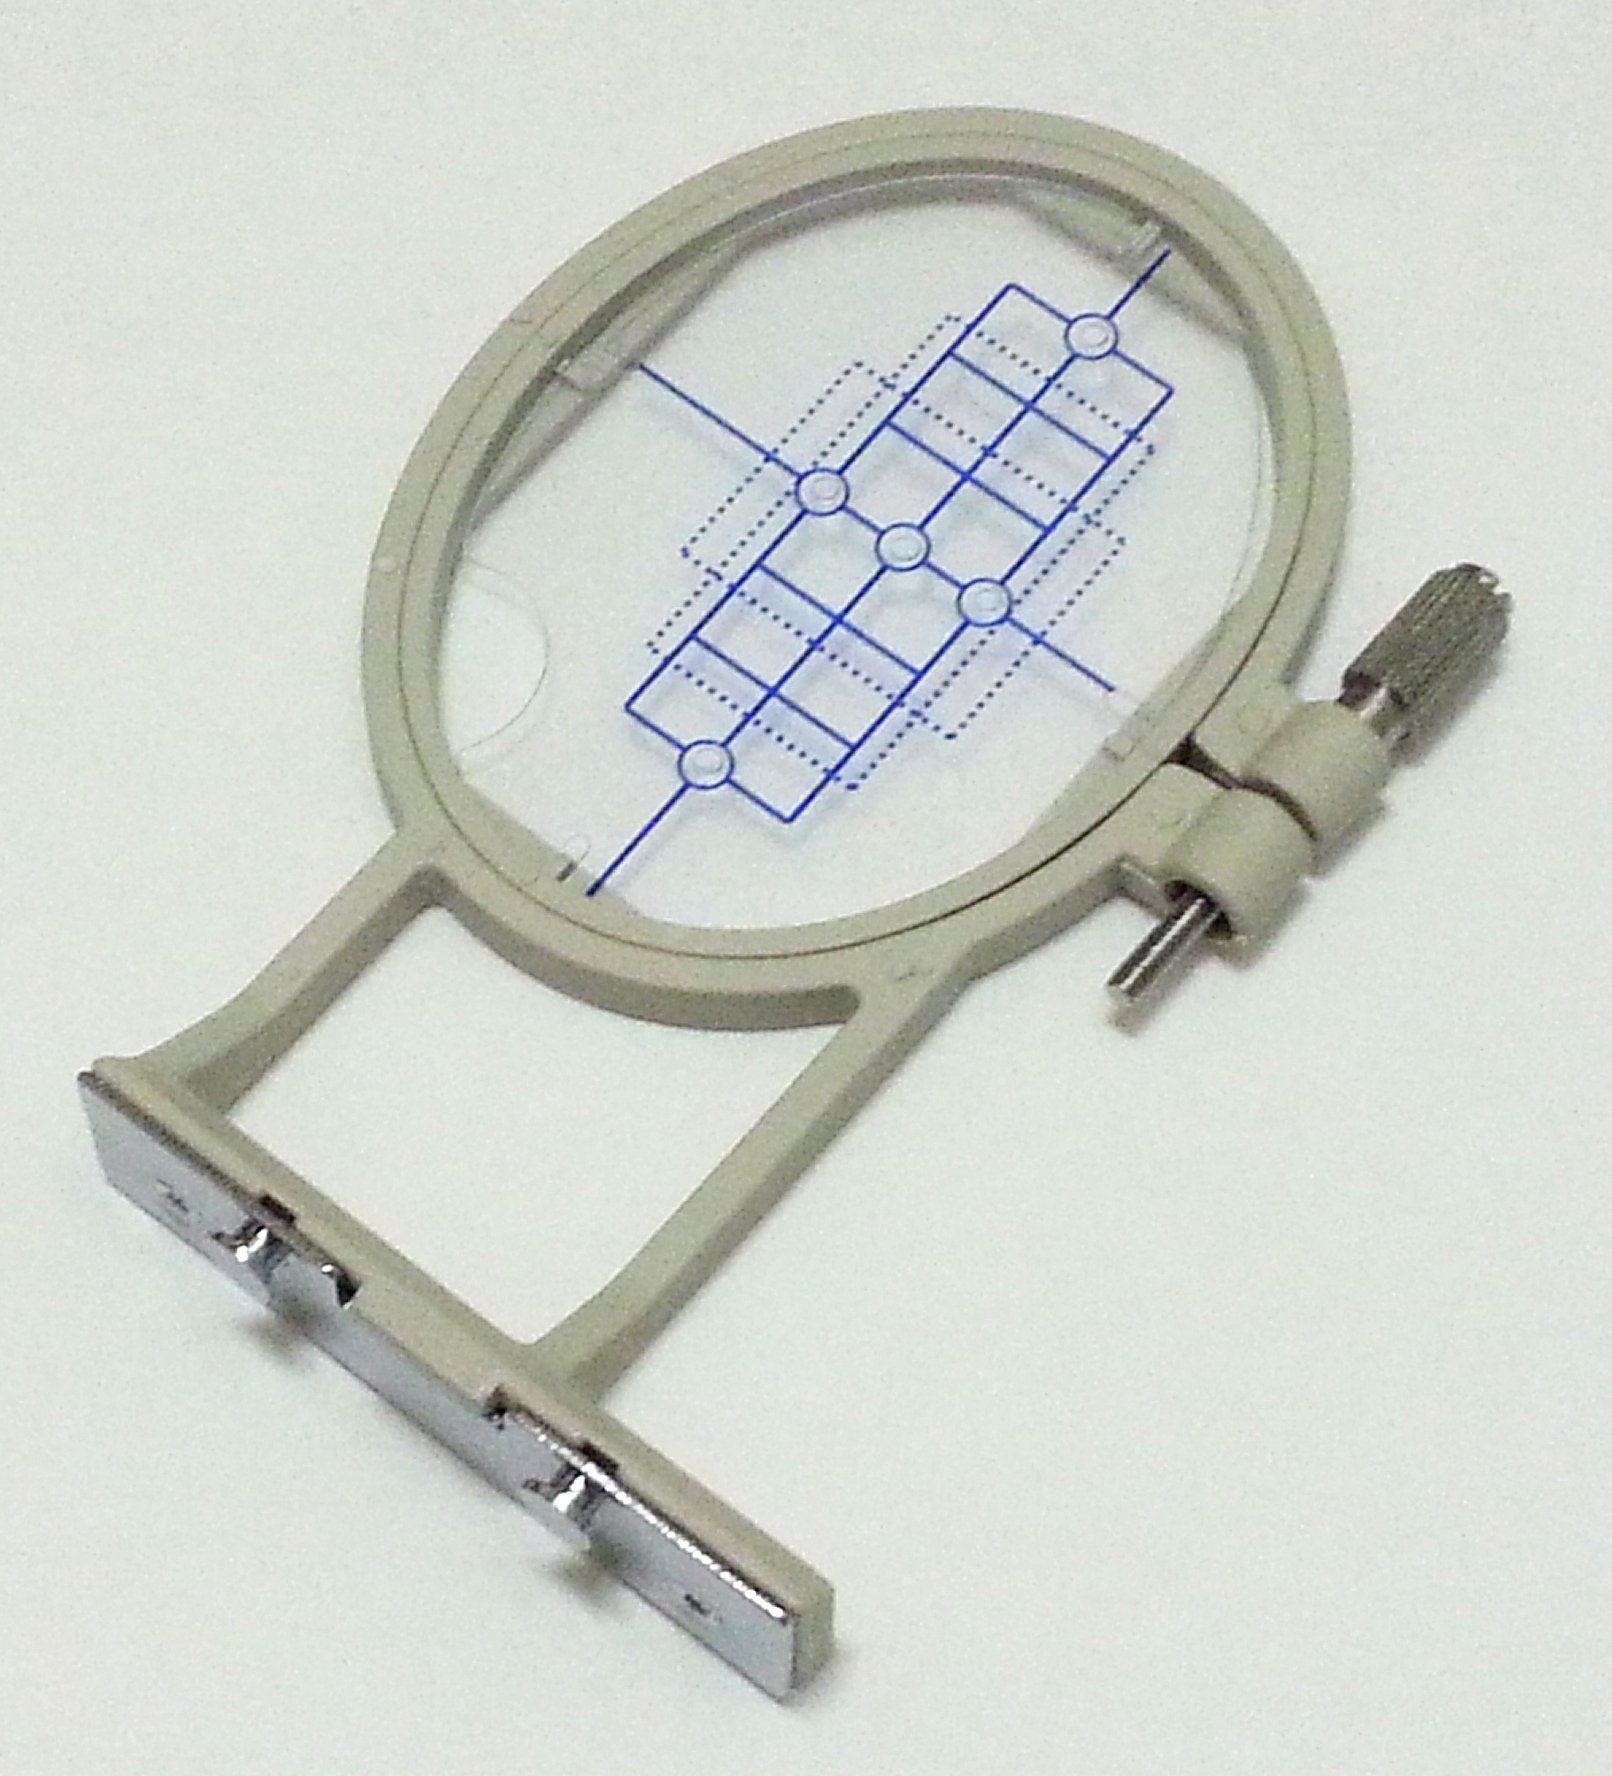 HE-120 SE-400 900D 950D SB7050E SE-350 Large Embroidery Hoop w// Placement Grid PE-500 Innovis 950D LB6770PRW for Brother SE270D SA432 LB6800PRW Babylock Sofia A-Line and Babylock Intrigue from ThreadNanny by T Innovis 500D Innovis 900D HE-240